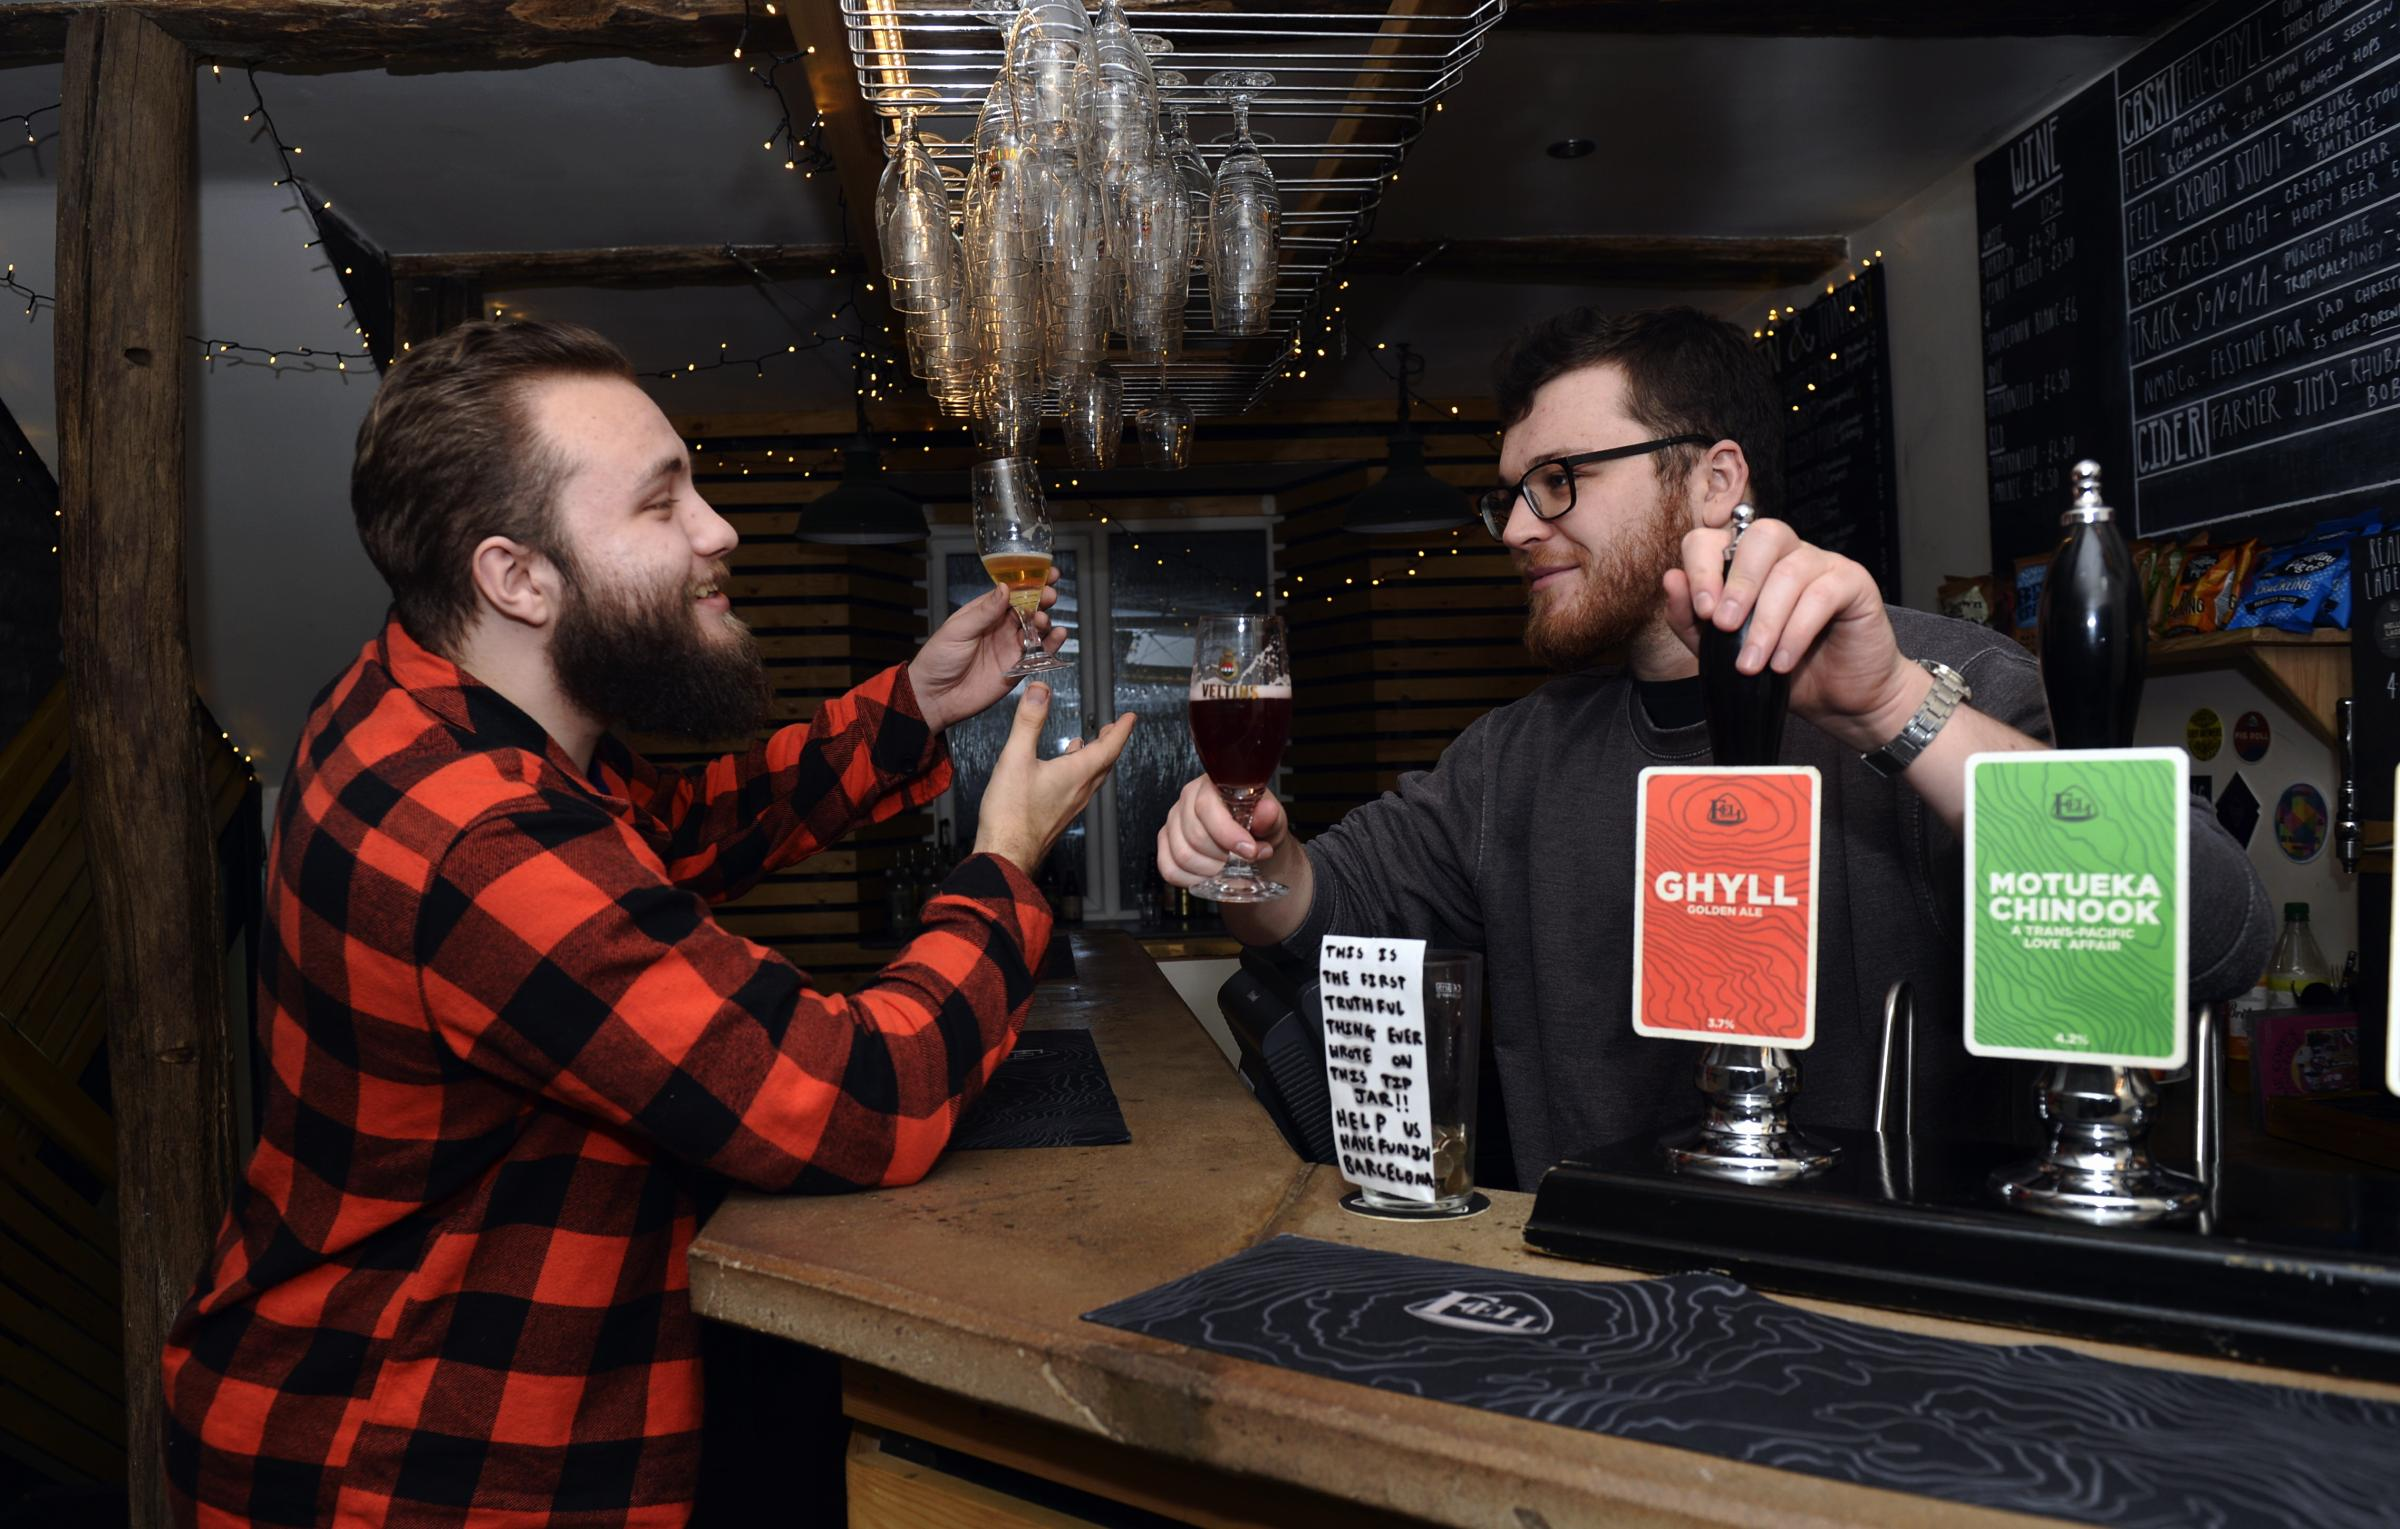 Ben Evans (right) of the Fell Bar in Kendal discussing craft beers with customer Charlie Gray...09/01/2019..JON GRANGER.